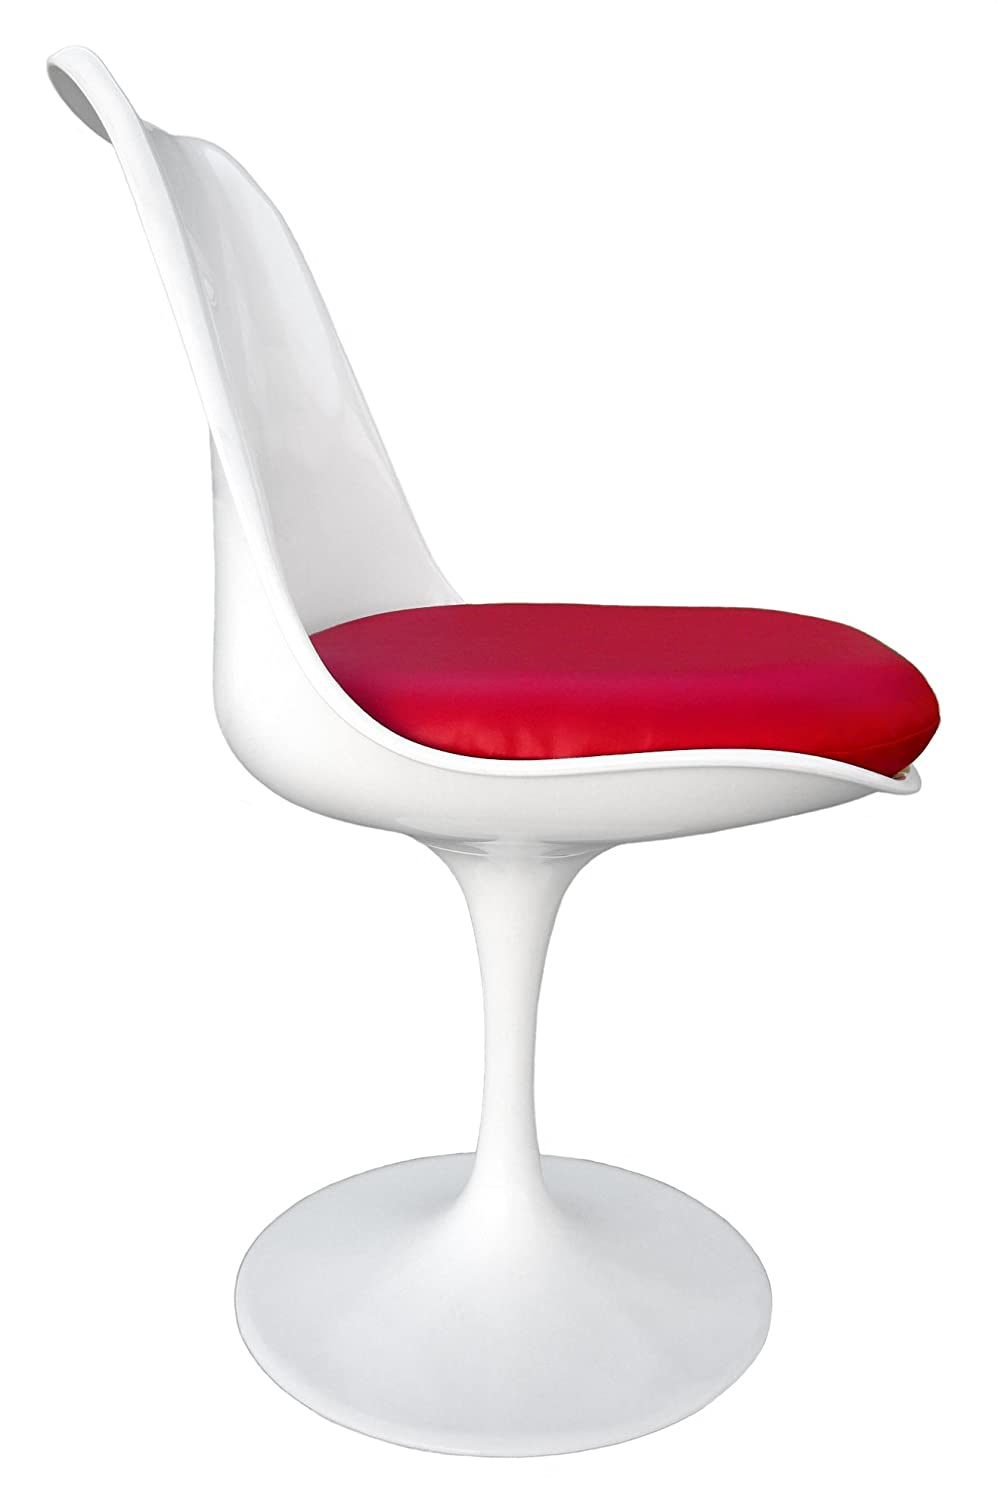 Amazon.com: Premium Replacement Cushion For Saarinen Tulip Side Chair   Red  Vinyl: Prints: Posters U0026 Prints